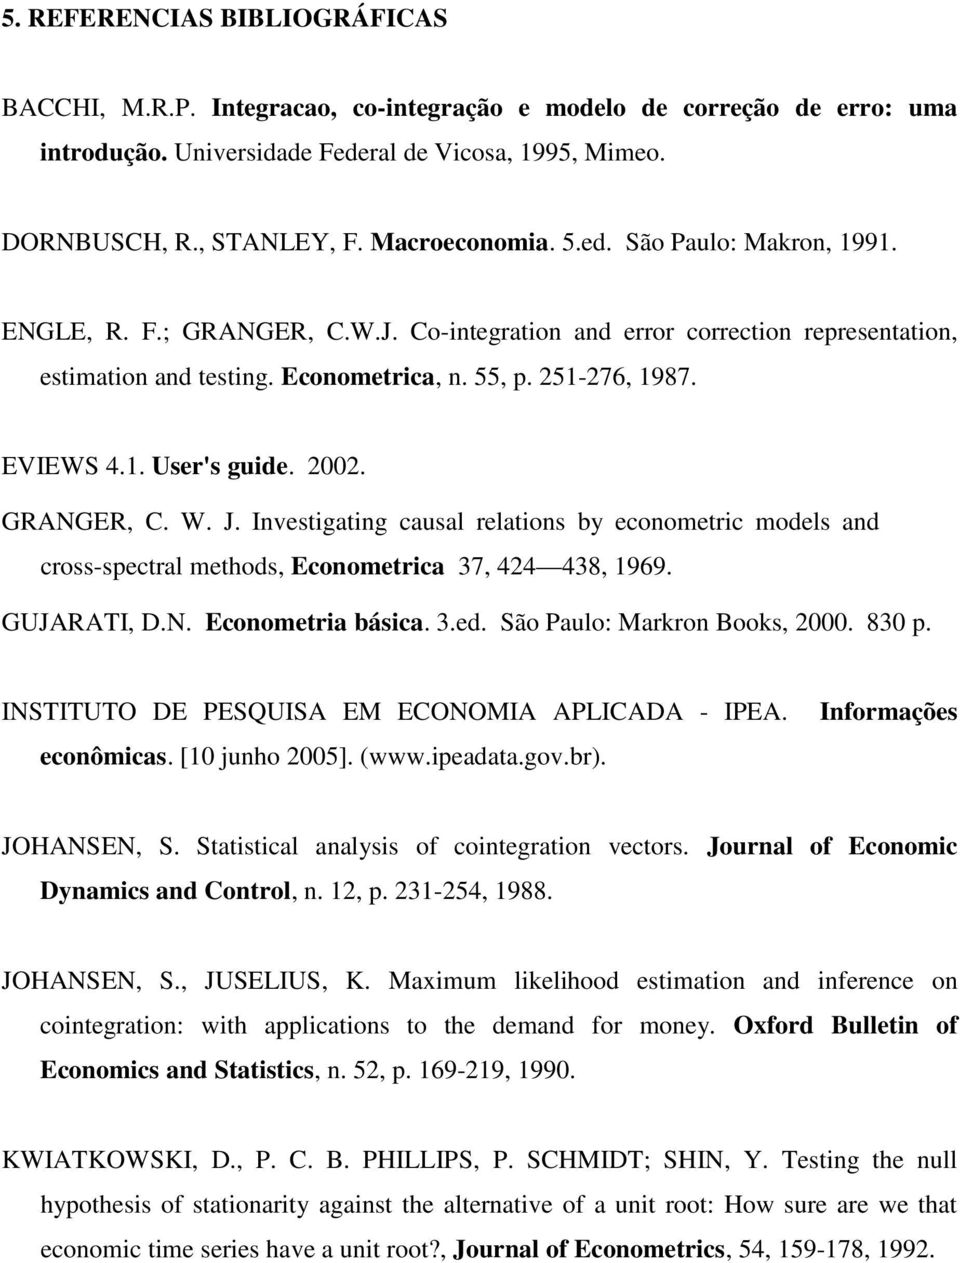 GRANGER, C. W. J. Invesigaing causal relaions by economeric models and cross-specral mehods, Economerica 37, 424 438, 1969. GUJARATI, D.N. Economeria básica. 3.ed. São Paulo: Markron Books, 2000.